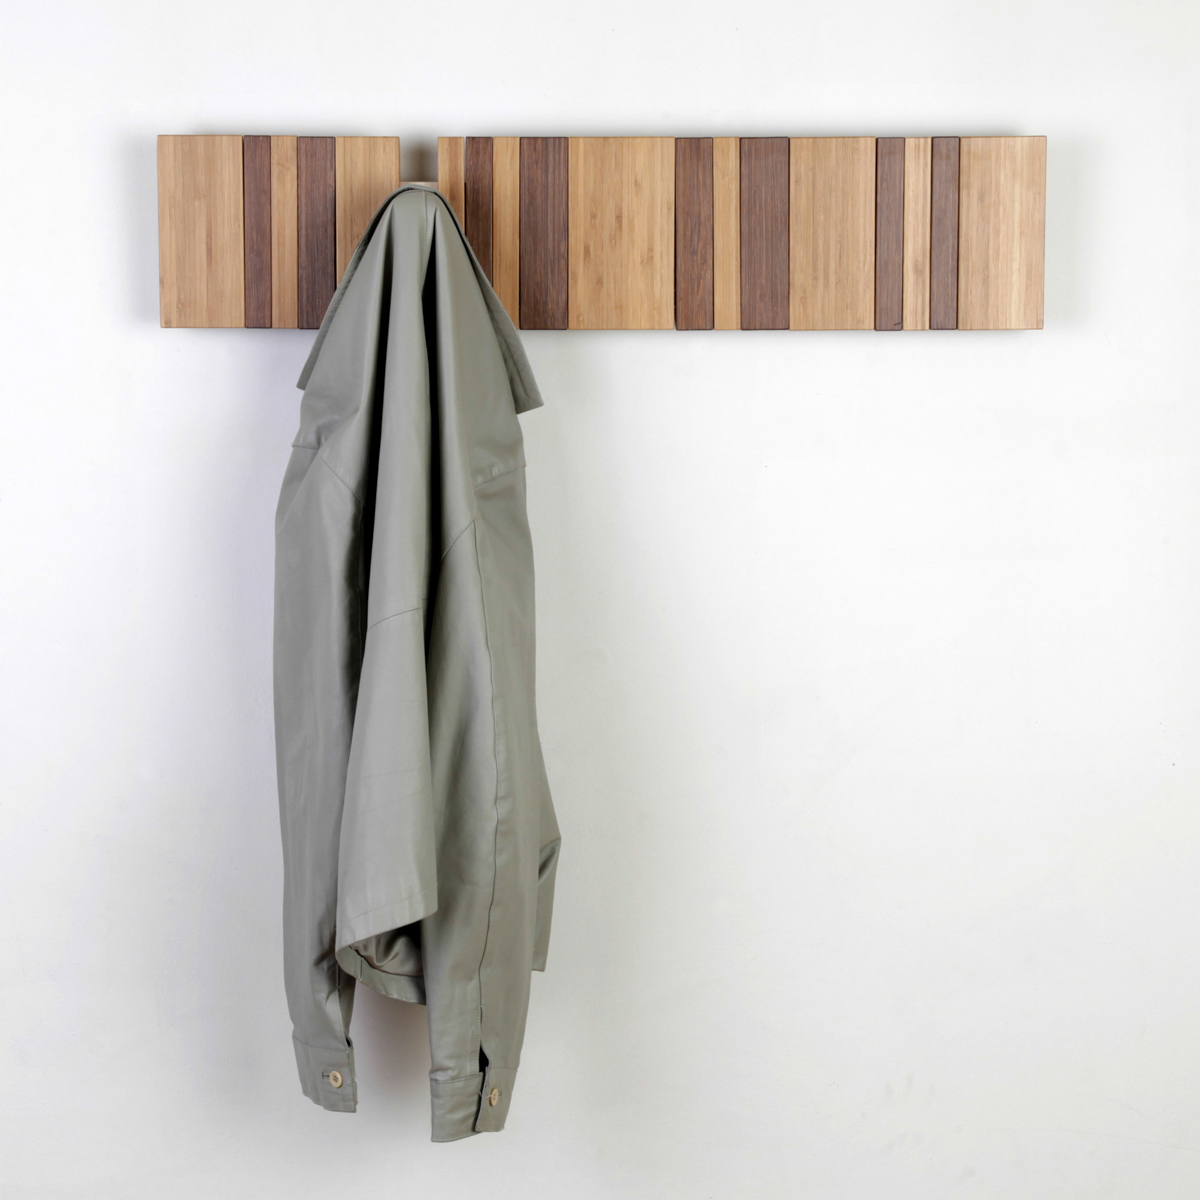 pianoforte coat rack